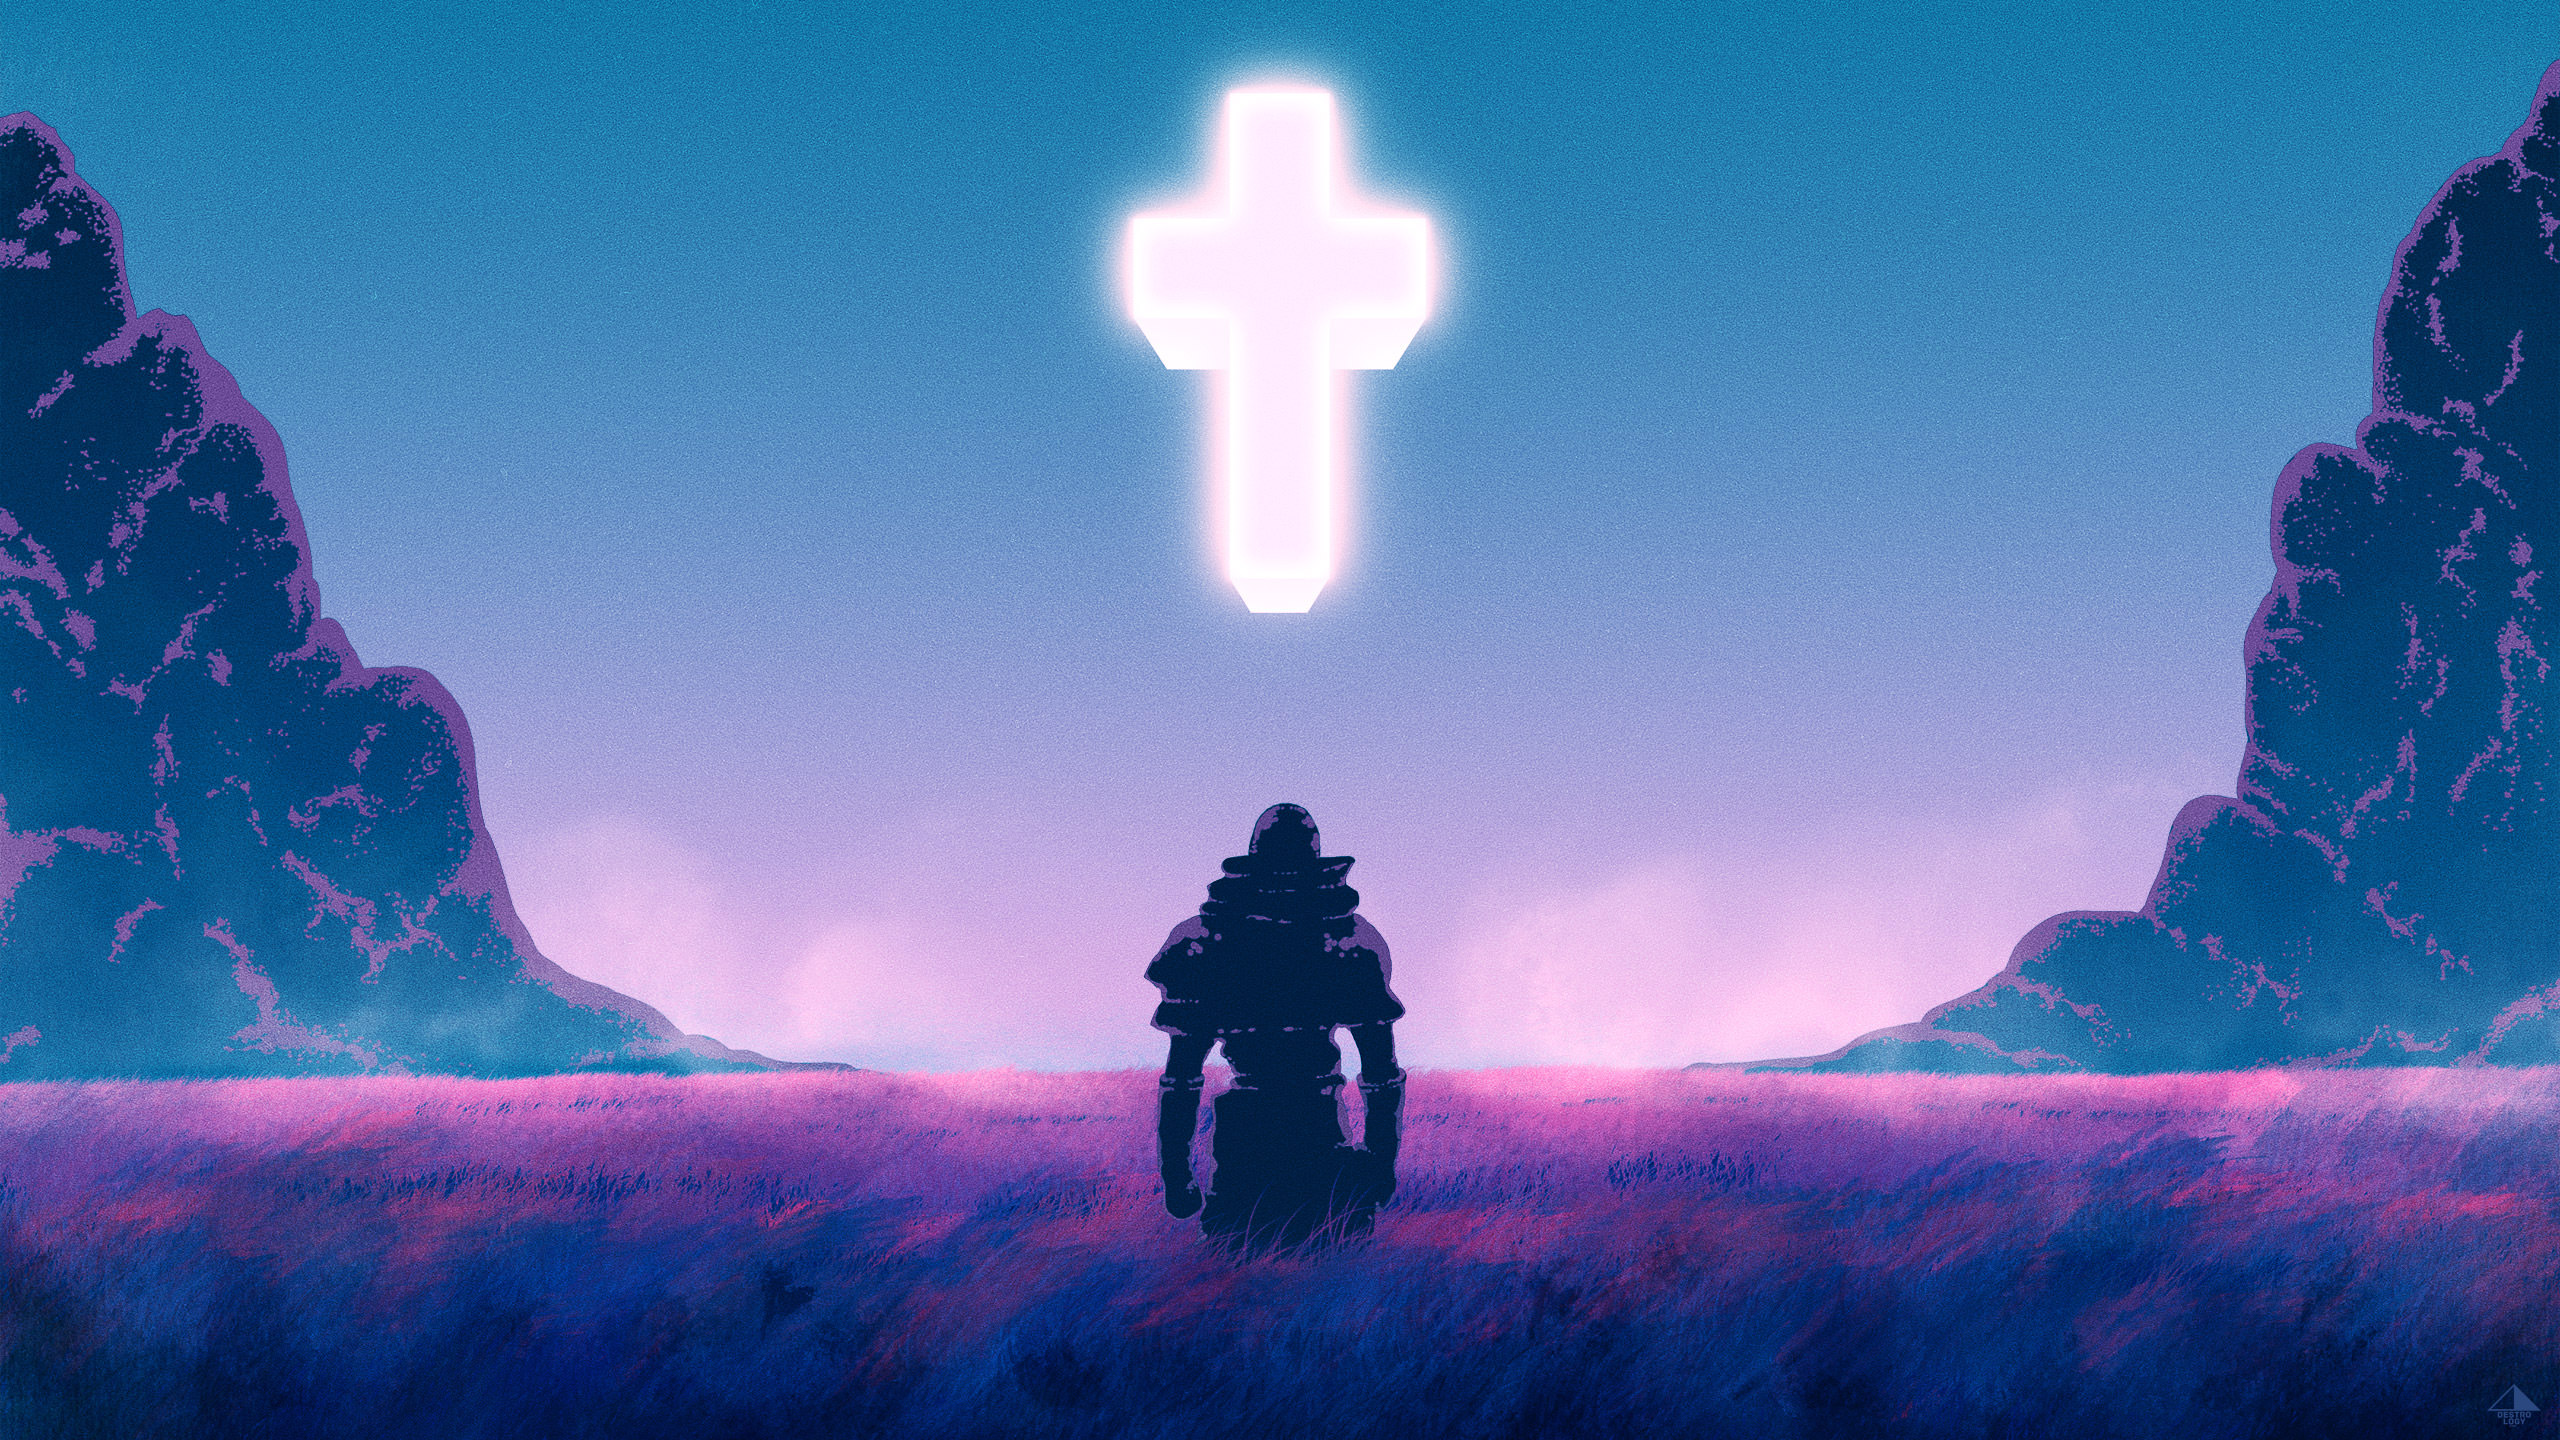 Synthwave, HD Artist, 4k Wallpapers, Images, Backgrounds ...